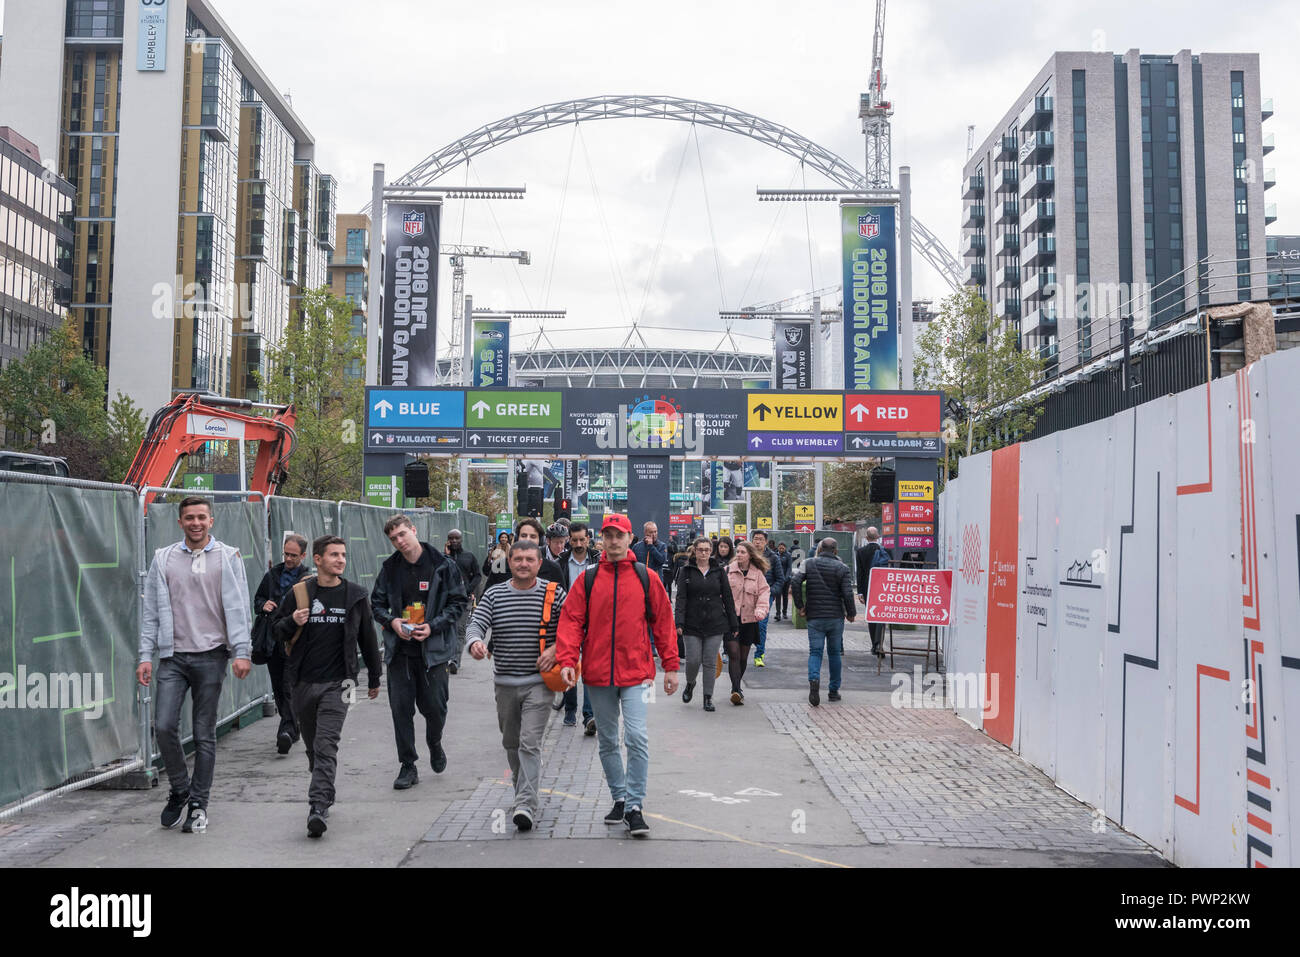 London, UK.  17 October 2018. Wembley Stadium in the distance as commuters walk down Olympic Way.  The area is currently decorated with NFL branding to promote the current three game series of NFL games at the stadium.  Shahid Khan, owner of Fulham FC and the Jacksonville Jaguars NFL team, has withdrawn his £600m offer to buy the stadium, amidst reports that he did not feel that he would receive sufficient support from The Football Association (FA).  The FA was due to vote on the potential sale on October 24.  Credit: Stephen Chung / Alamy Live News - Stock Image